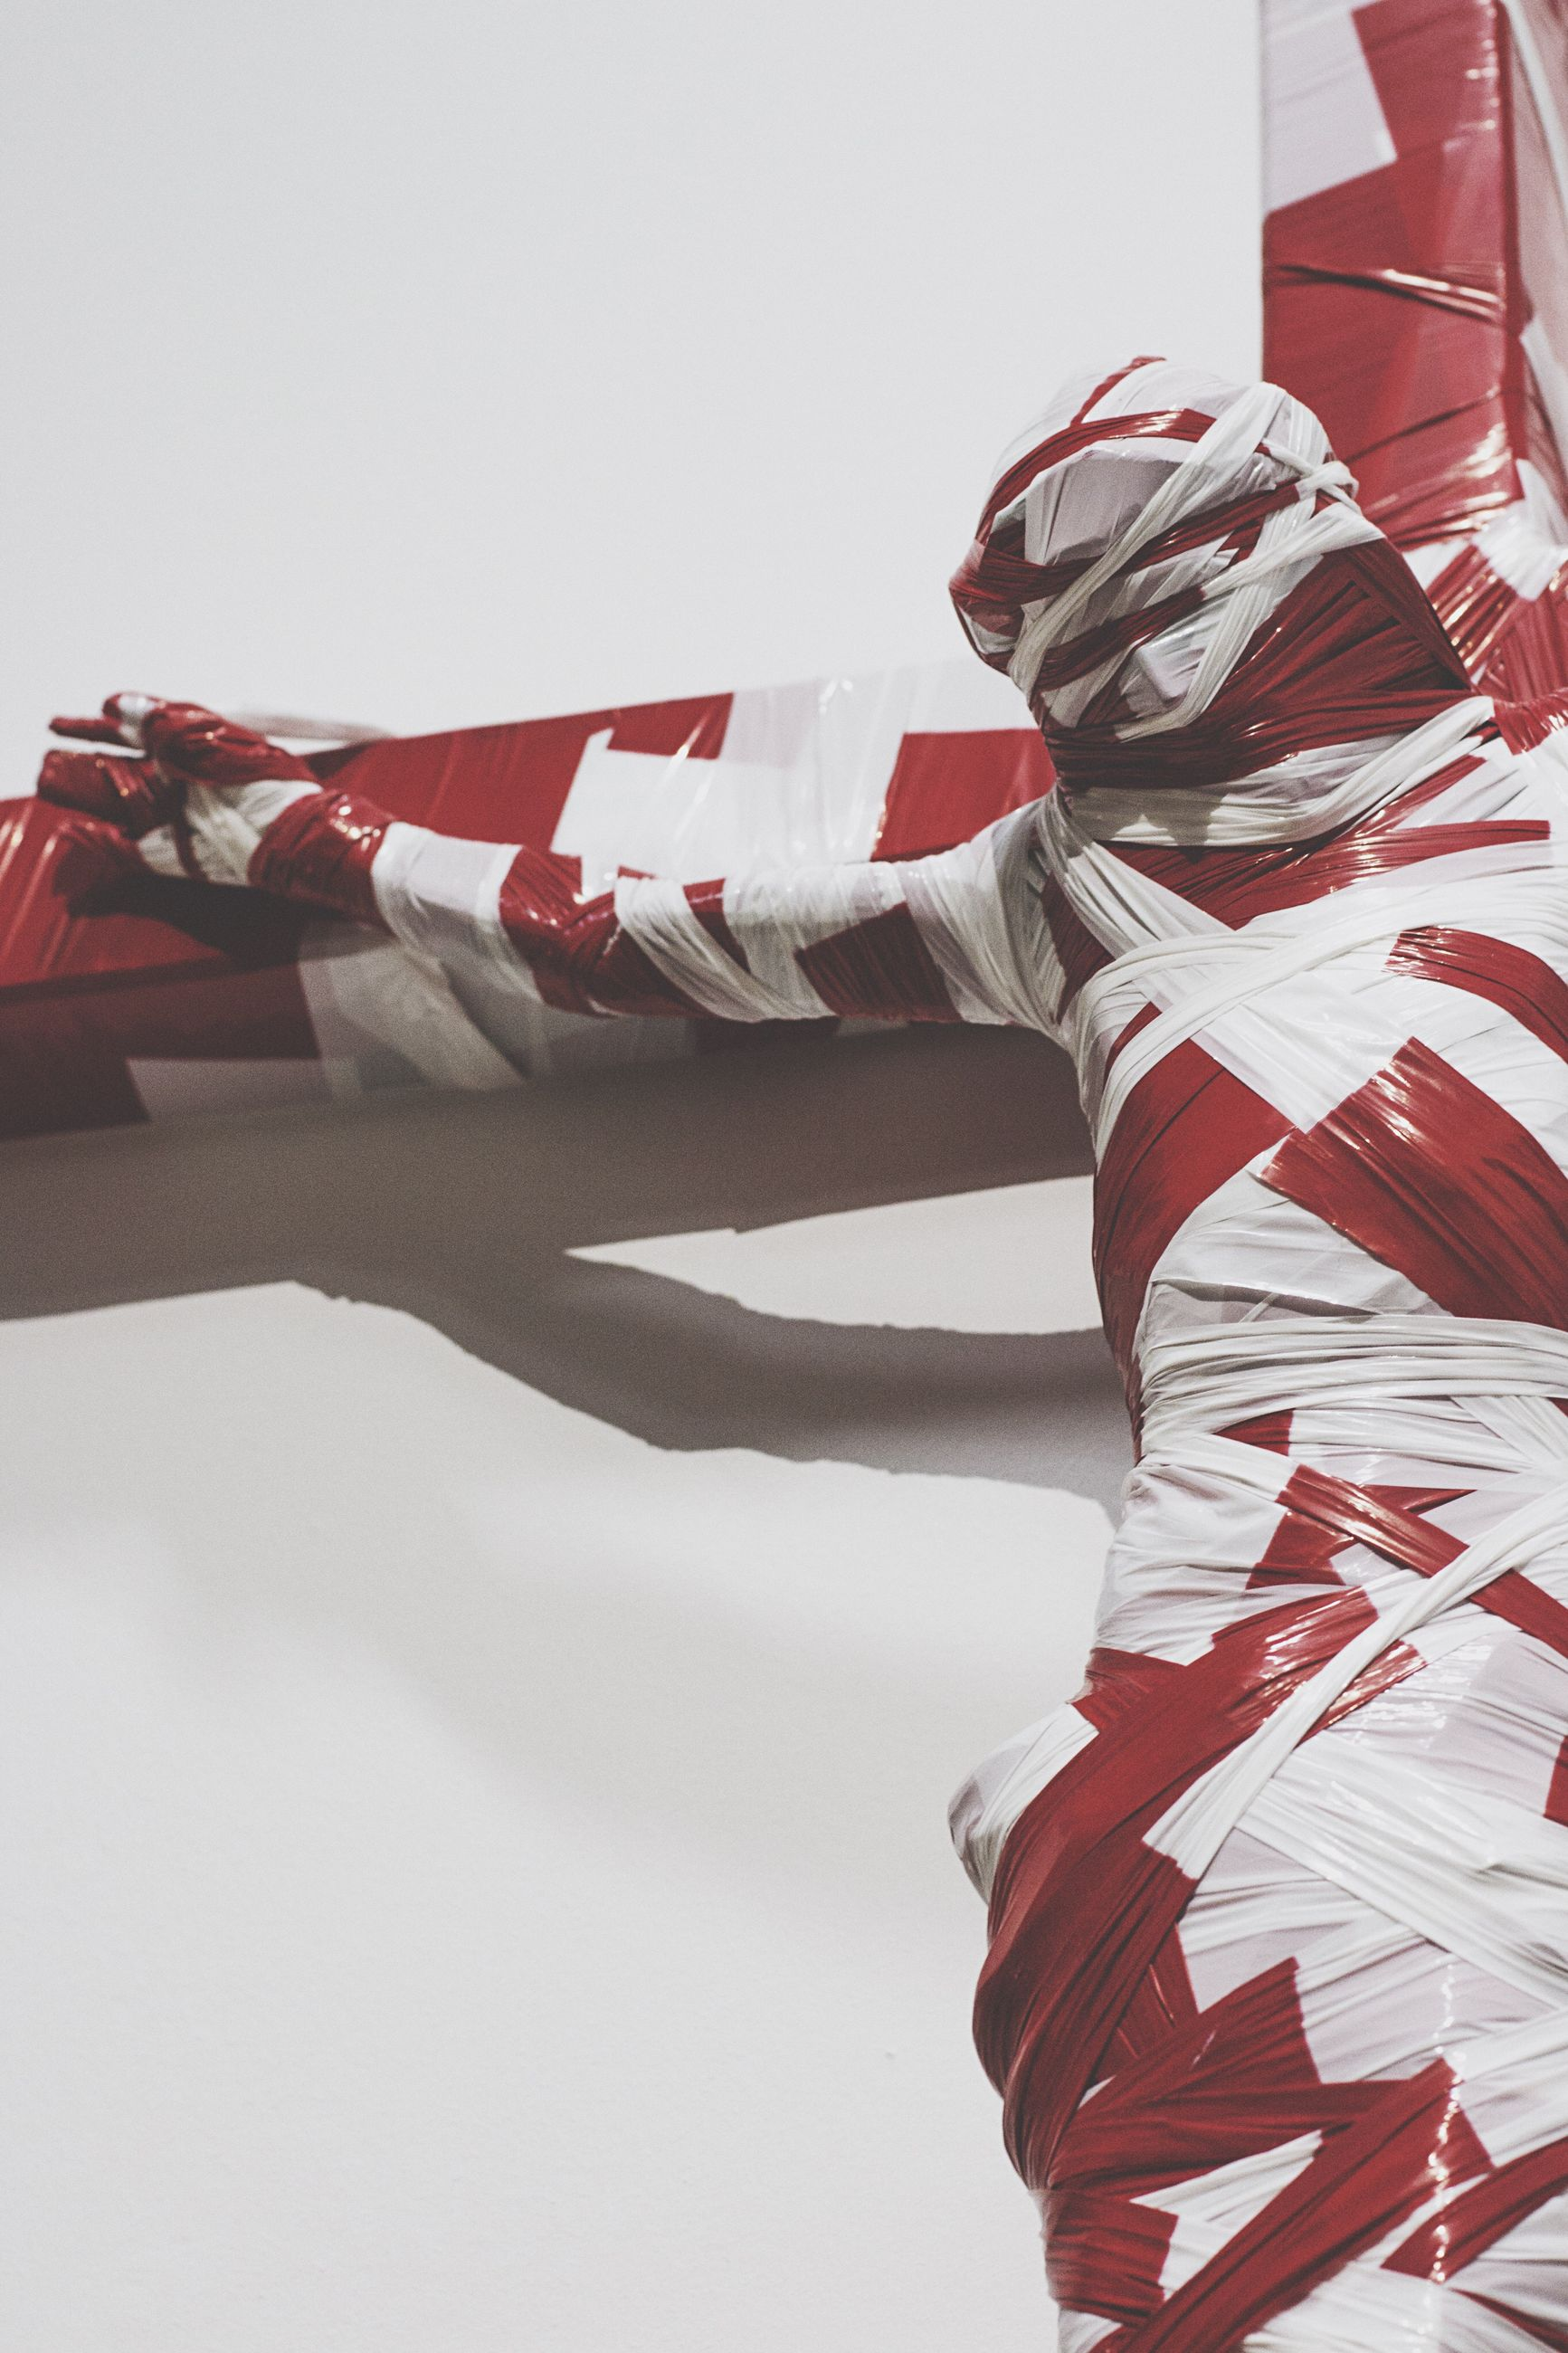 patriotism, identity, flag, national flag, low angle view, american flag, striped, architecture, built structure, red, fabric, white color, one person, building exterior, textile, culture, clothing, art and craft, creativity, copy space